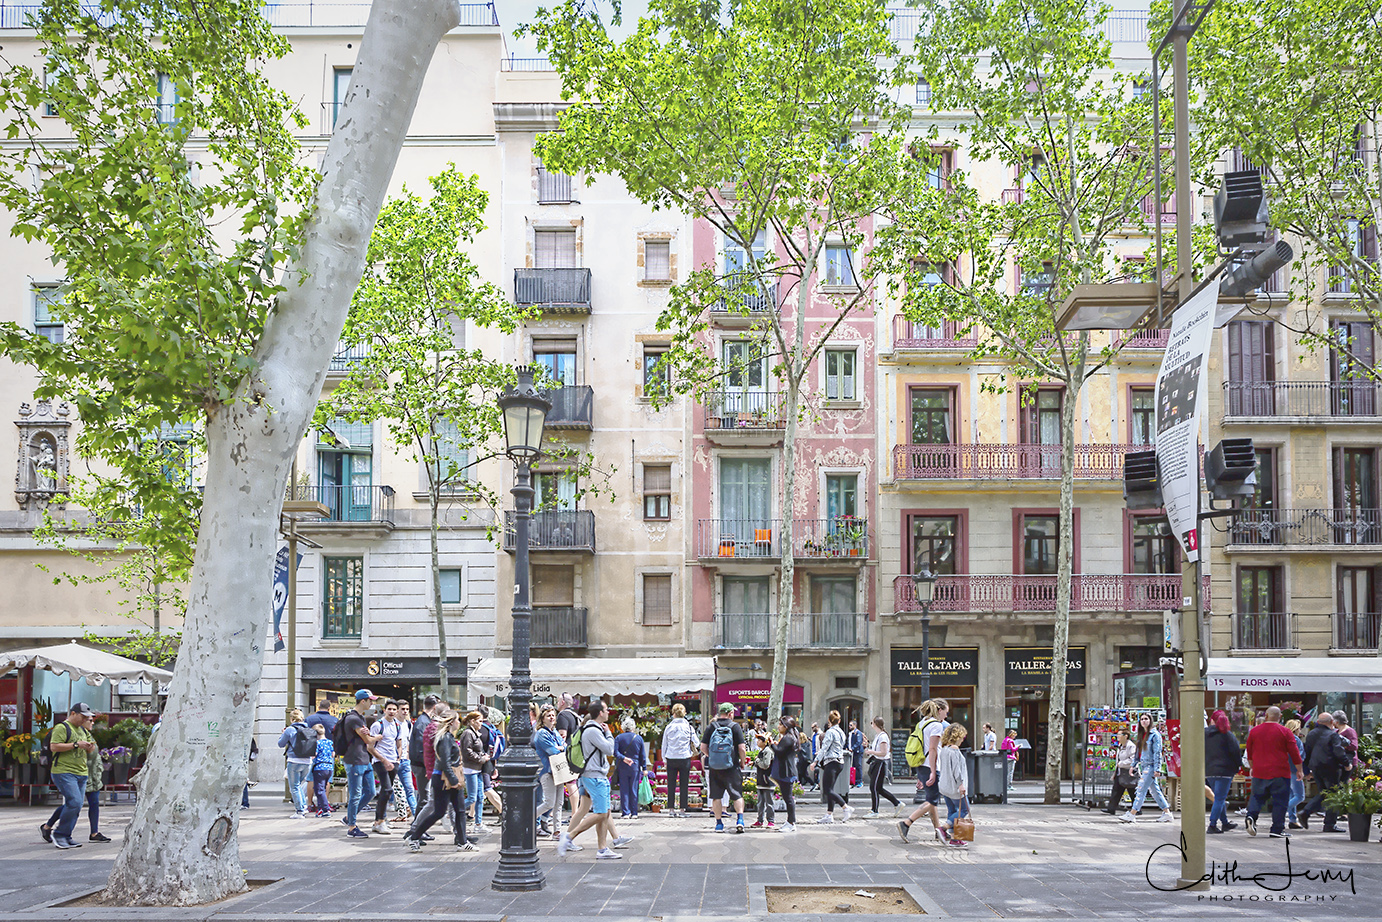 La Rambla is a street in central Barcelona that is a tree lined pedestrian street popular with tourists and locals.